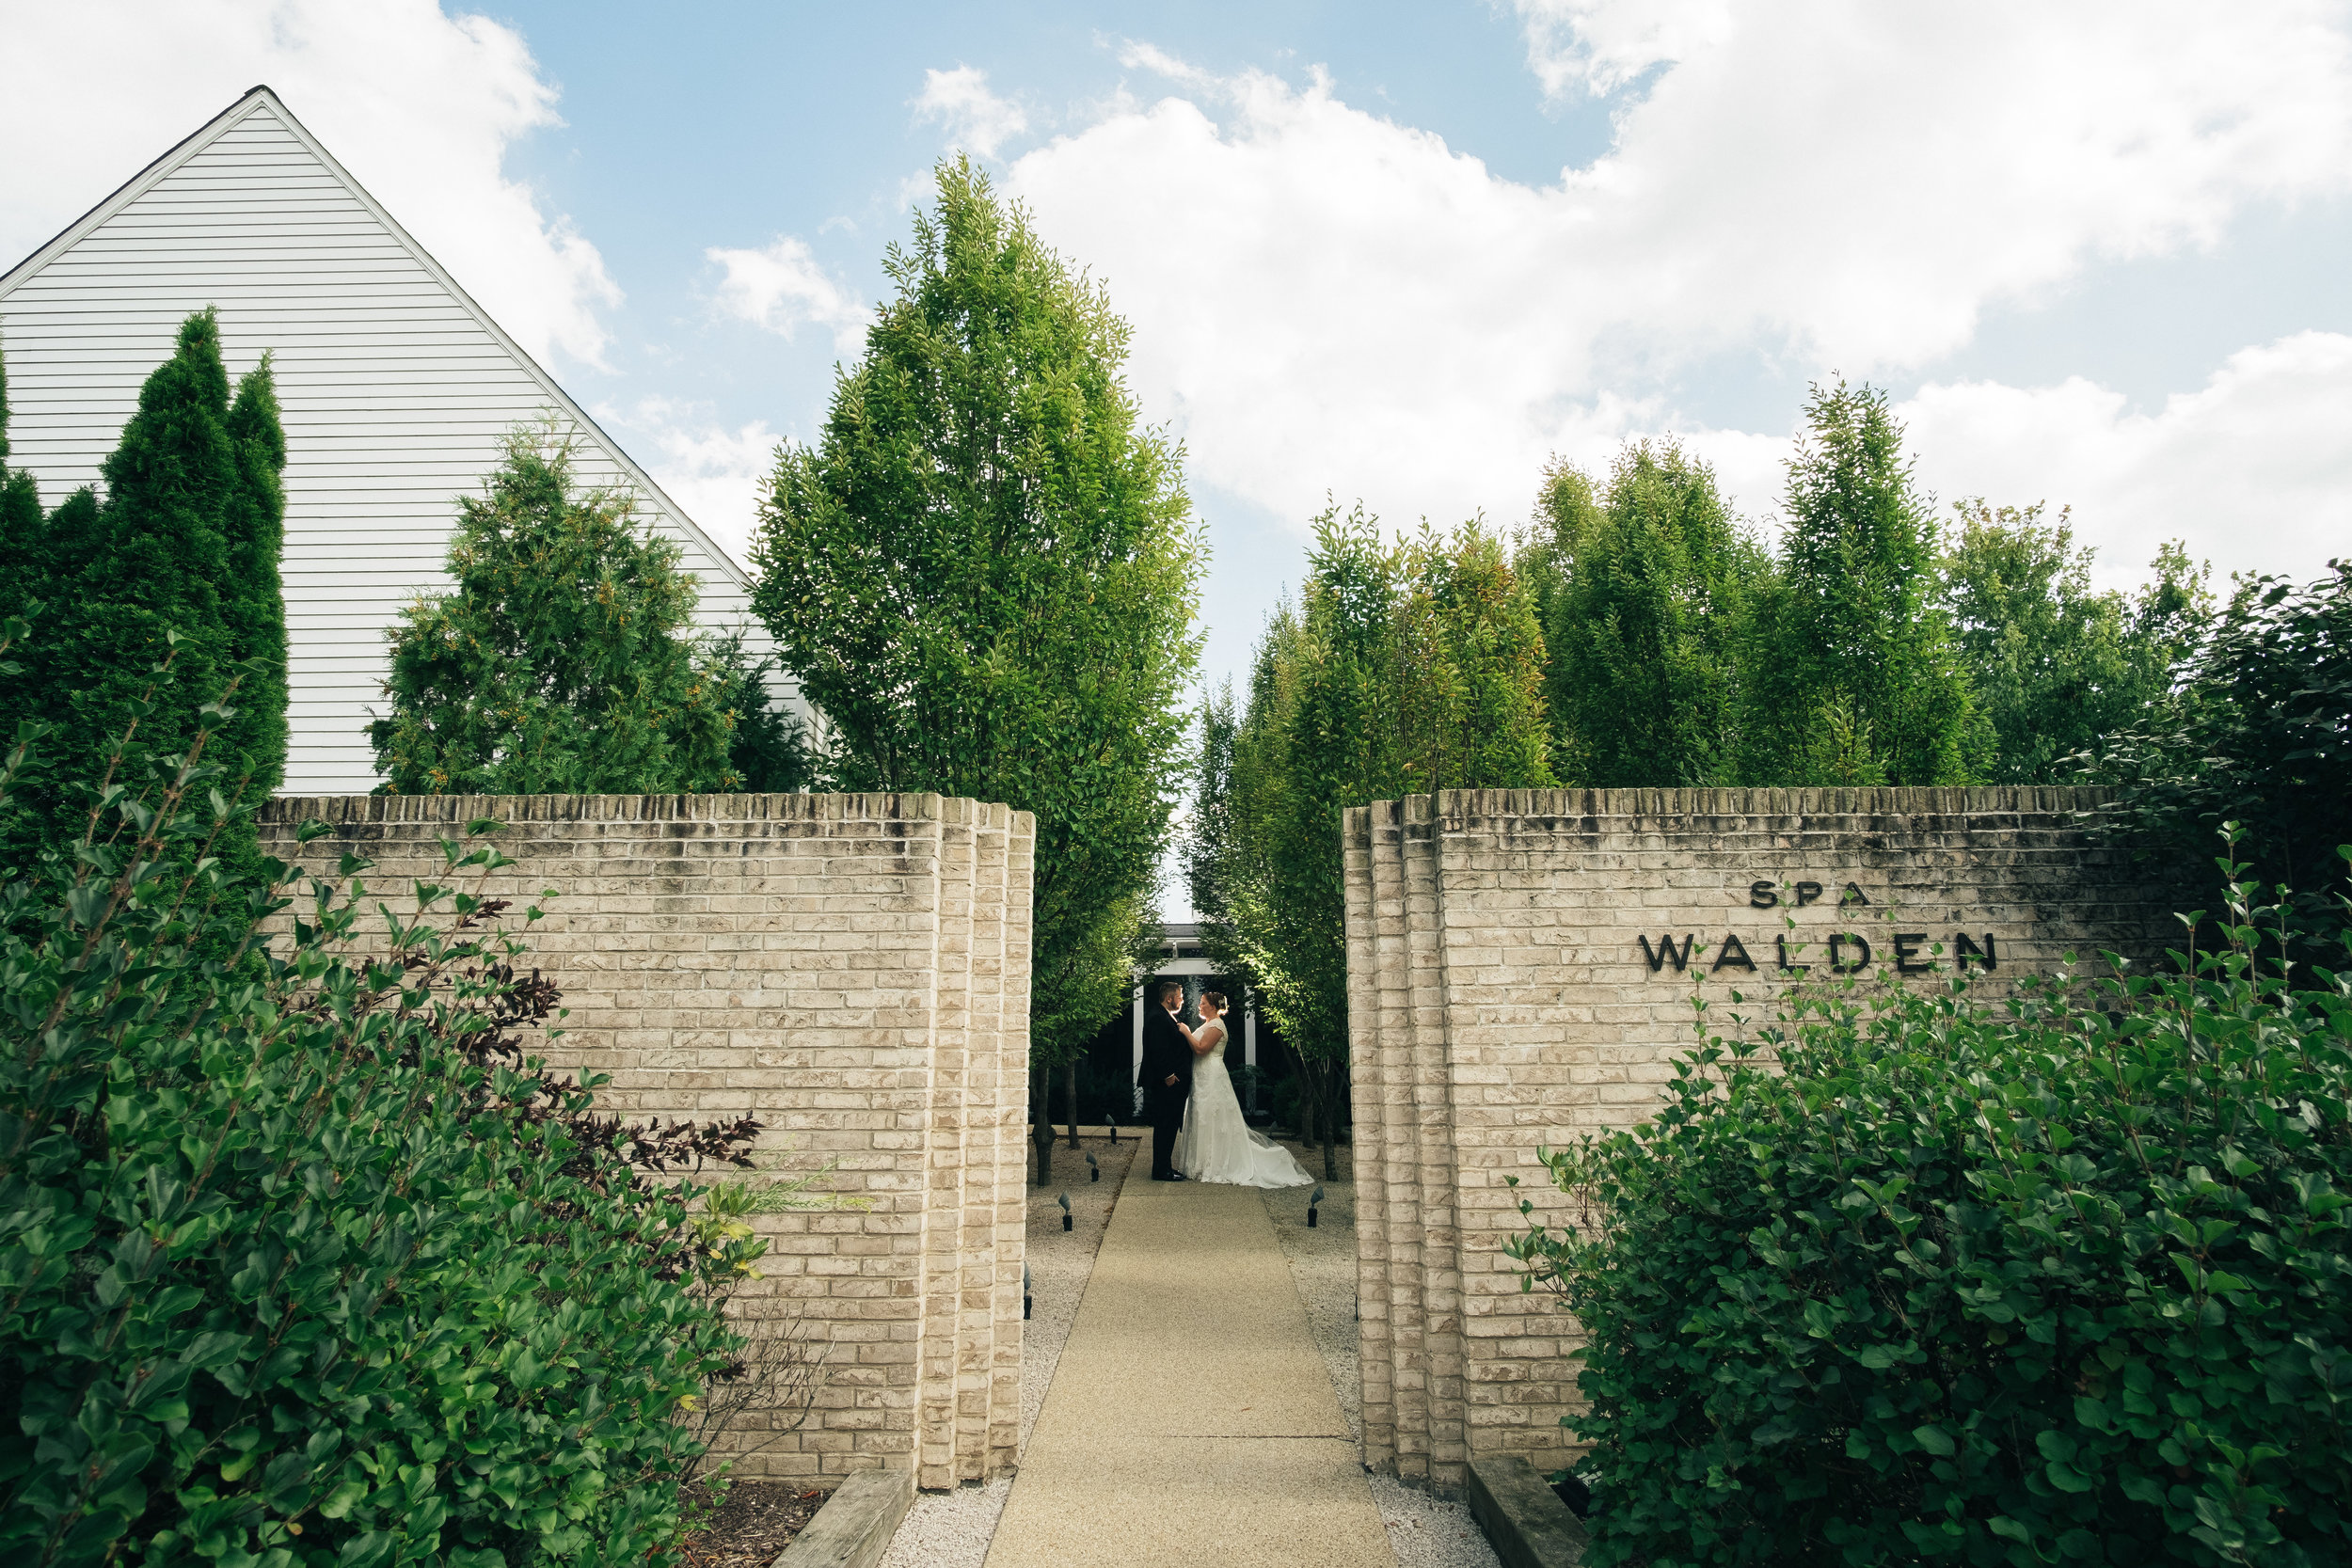 Bride and groom on wedding day at Spa Walden